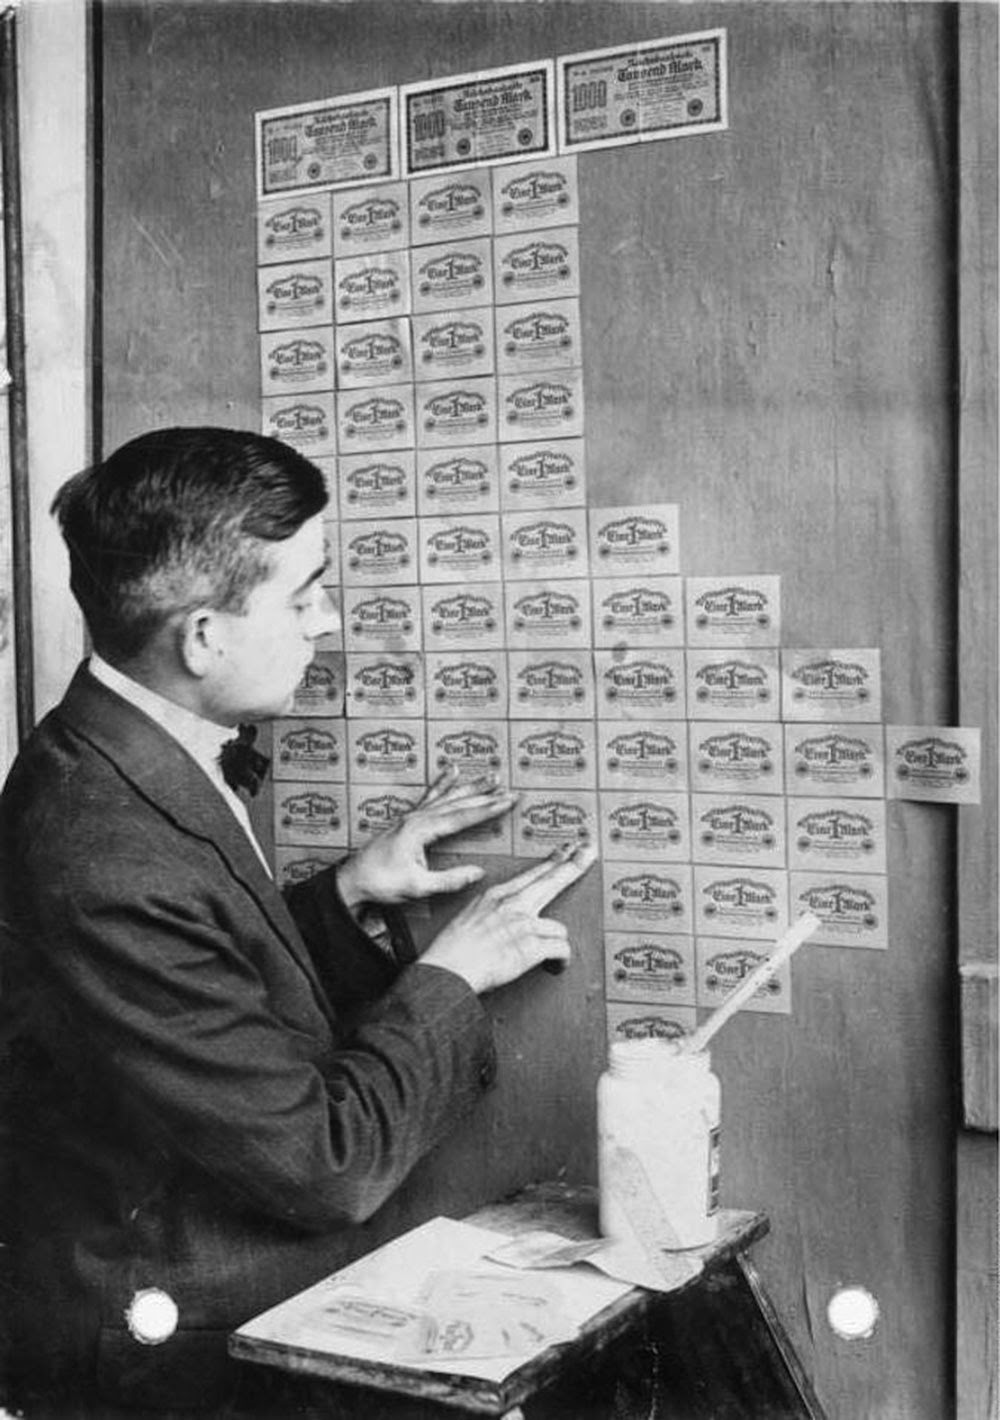 Germany, 1923: banknotes had lost so much value that they were used as wallpaper.